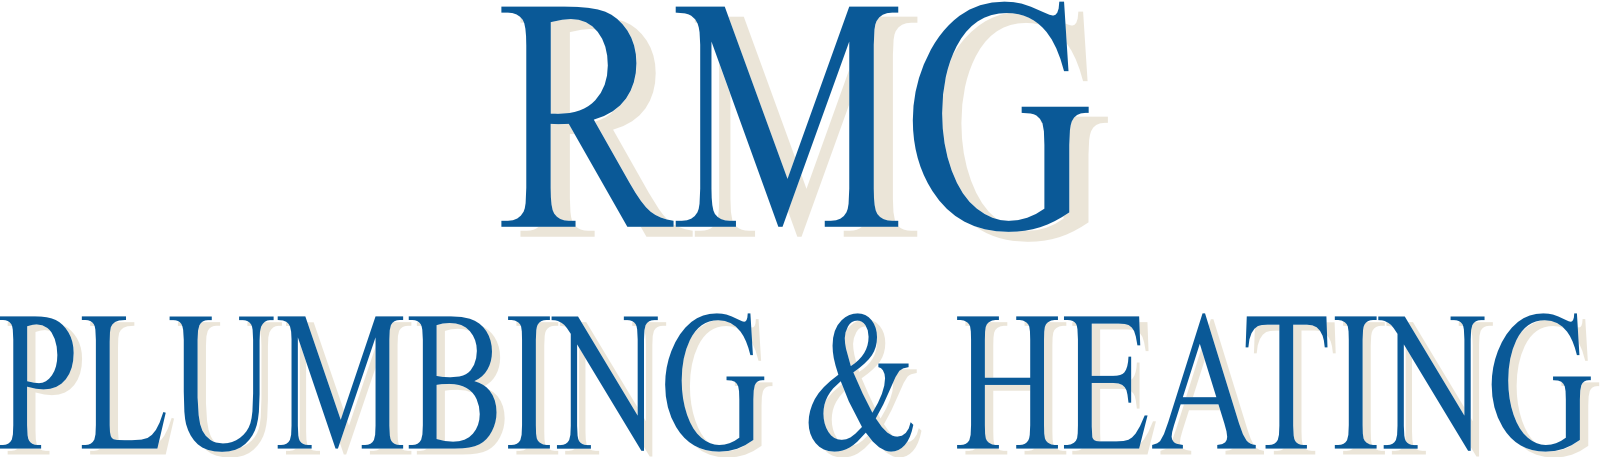 RMG Plumbing & Heating